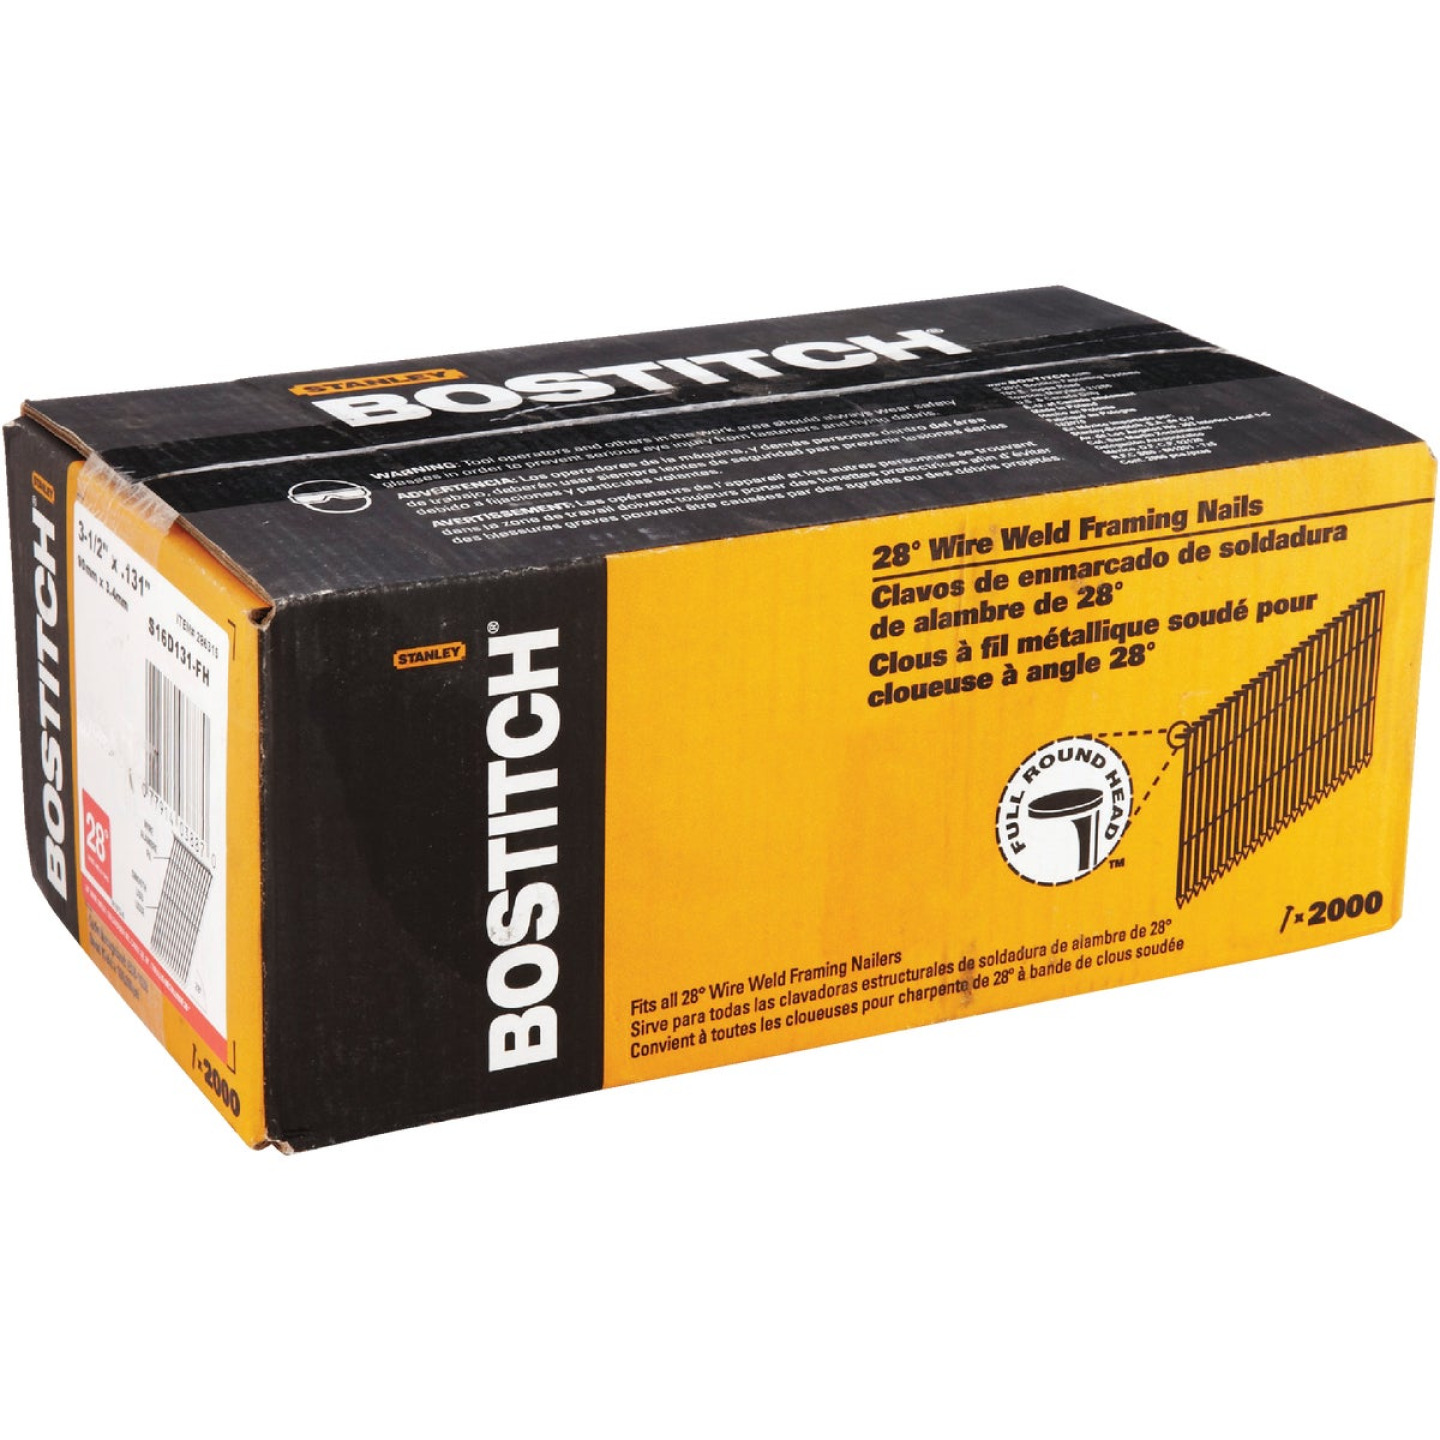 Bostitch 28 Degree Wire Weld Coated Offset Round Head Framing Stick Nail, 3-1/2 In. x .131 In. (2000 Ct.) Image 2